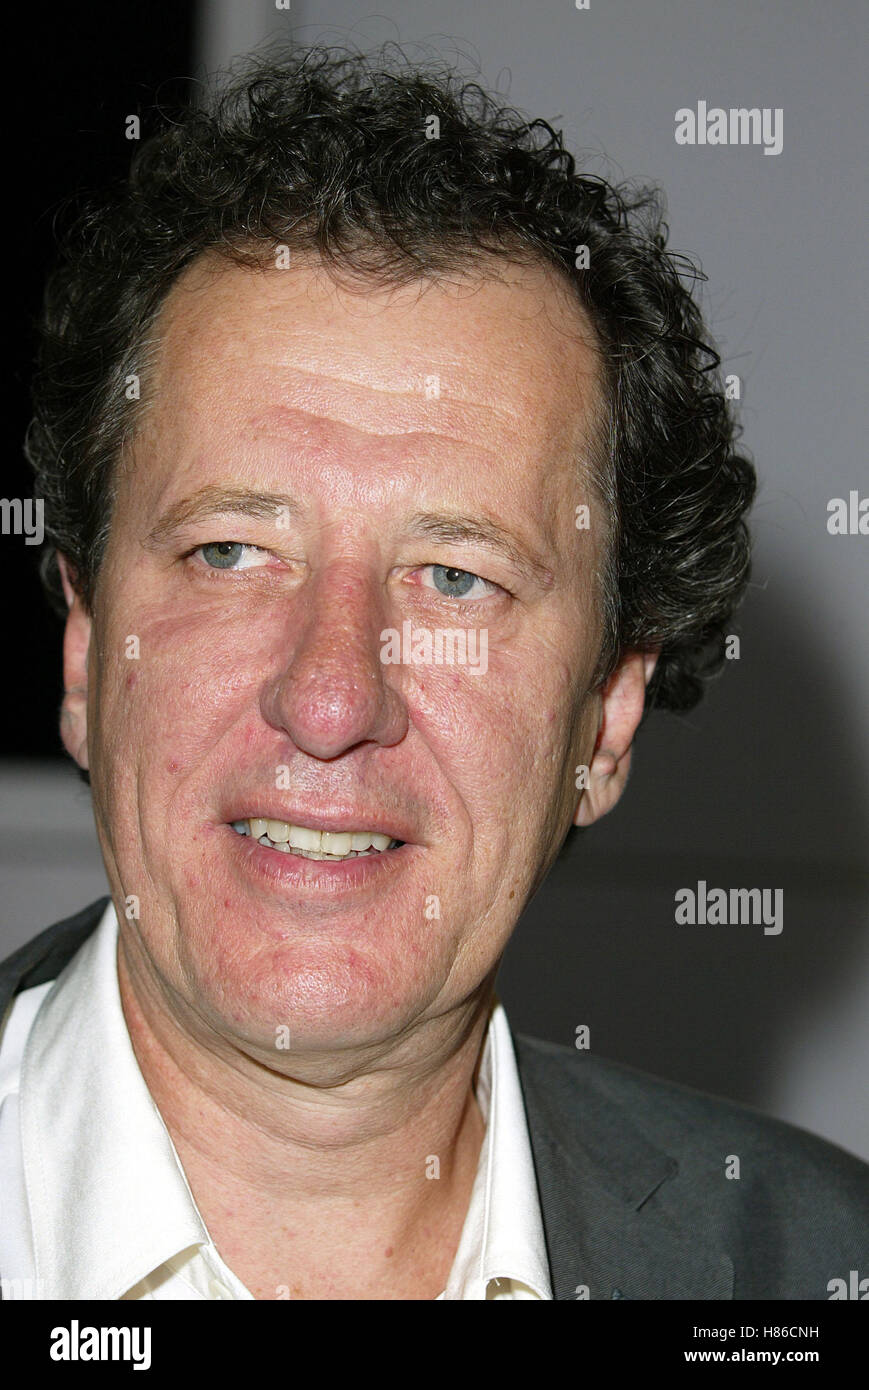 GEOFFREY RUSH FRIDA FILM PREMIERE LA COUNTY MUSEUM OF ART LOS - Film museums in usa